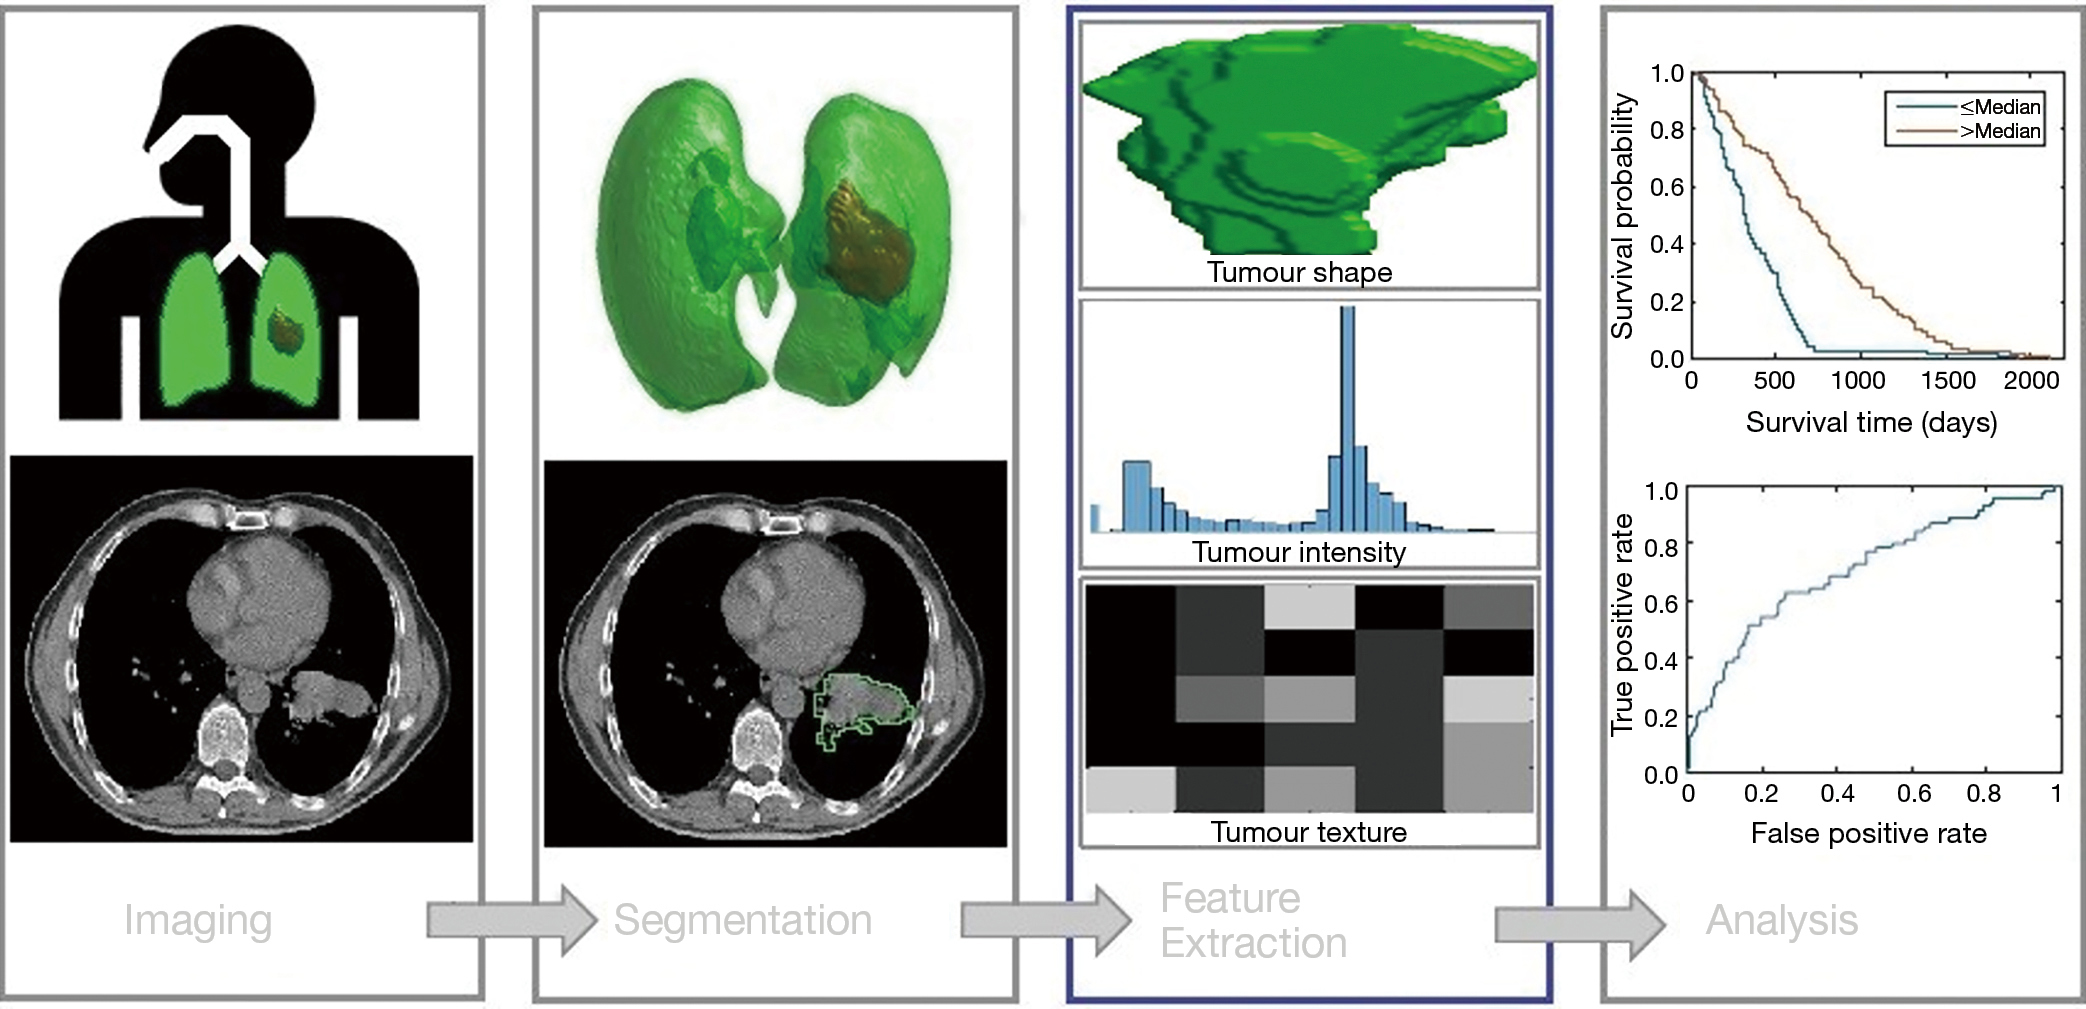 The role of deep learning and radiomic feature extraction in cancer